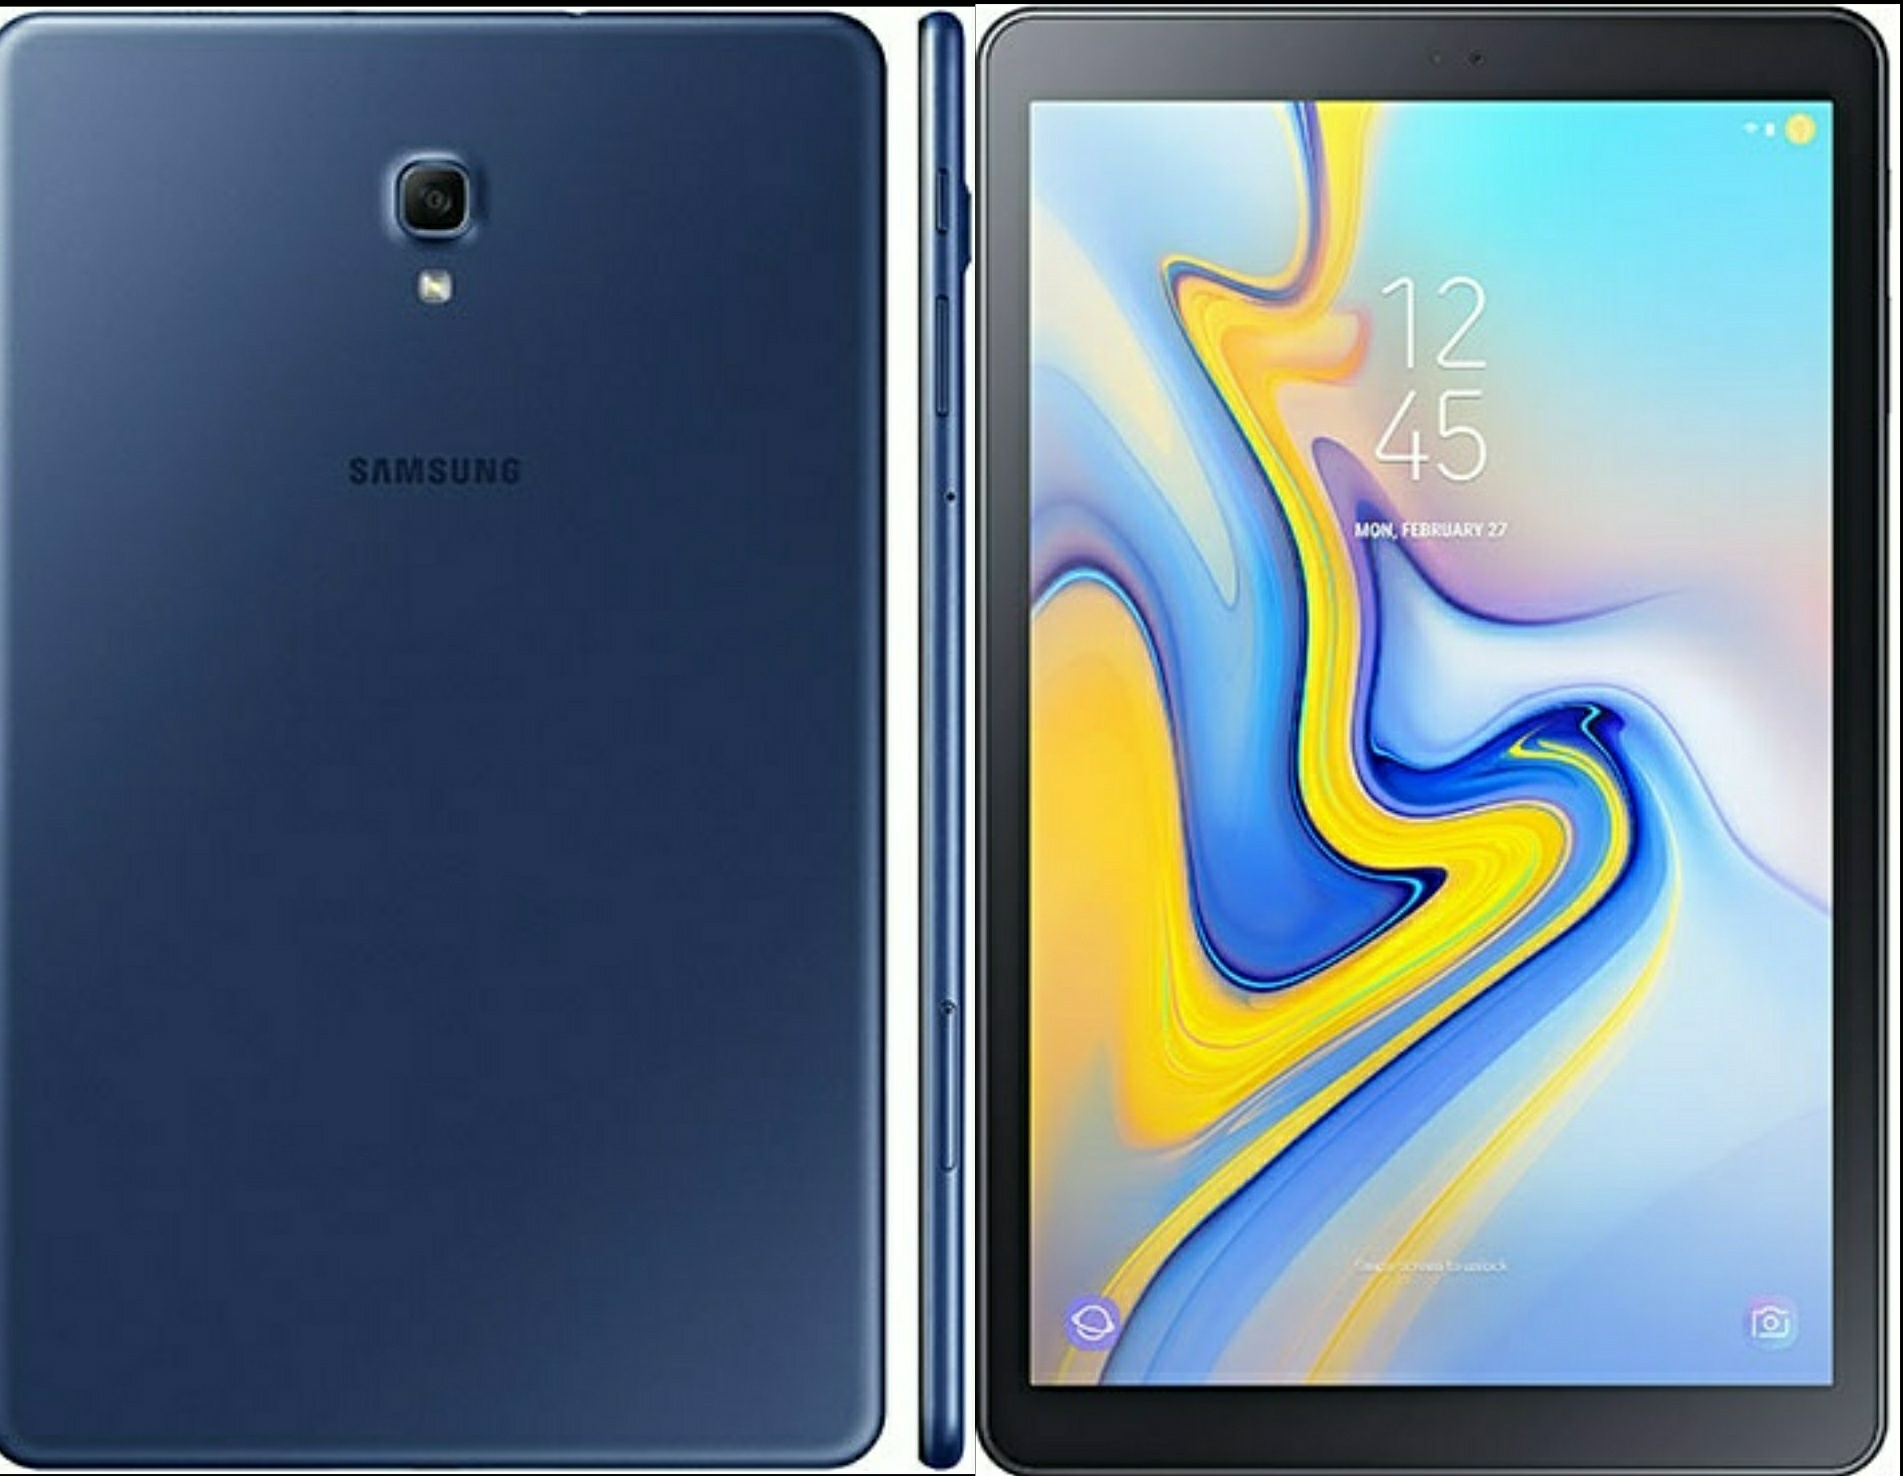 Samsung Galaxy Tab A 10.5 Specs, Video Review and Price